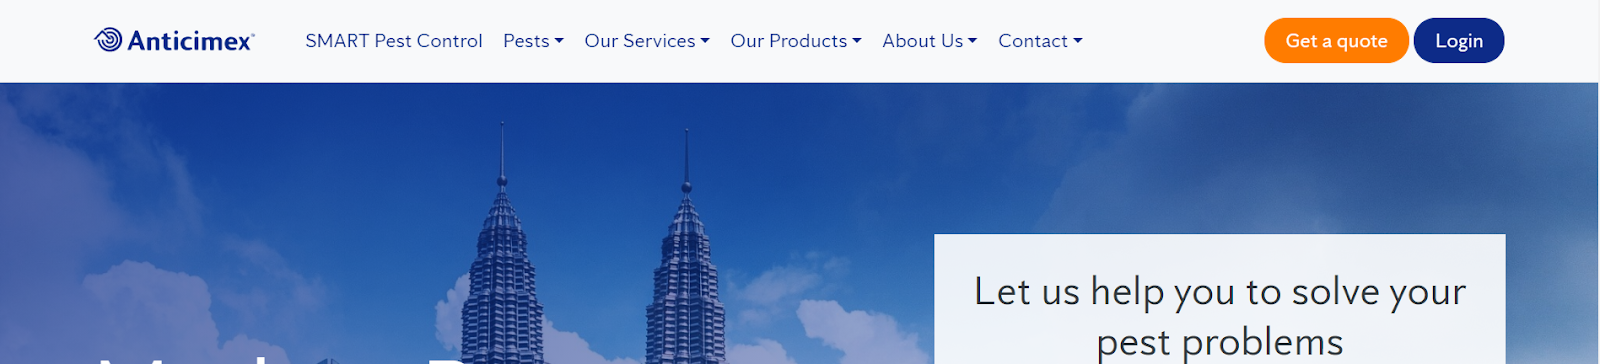 cleaning services malaysia